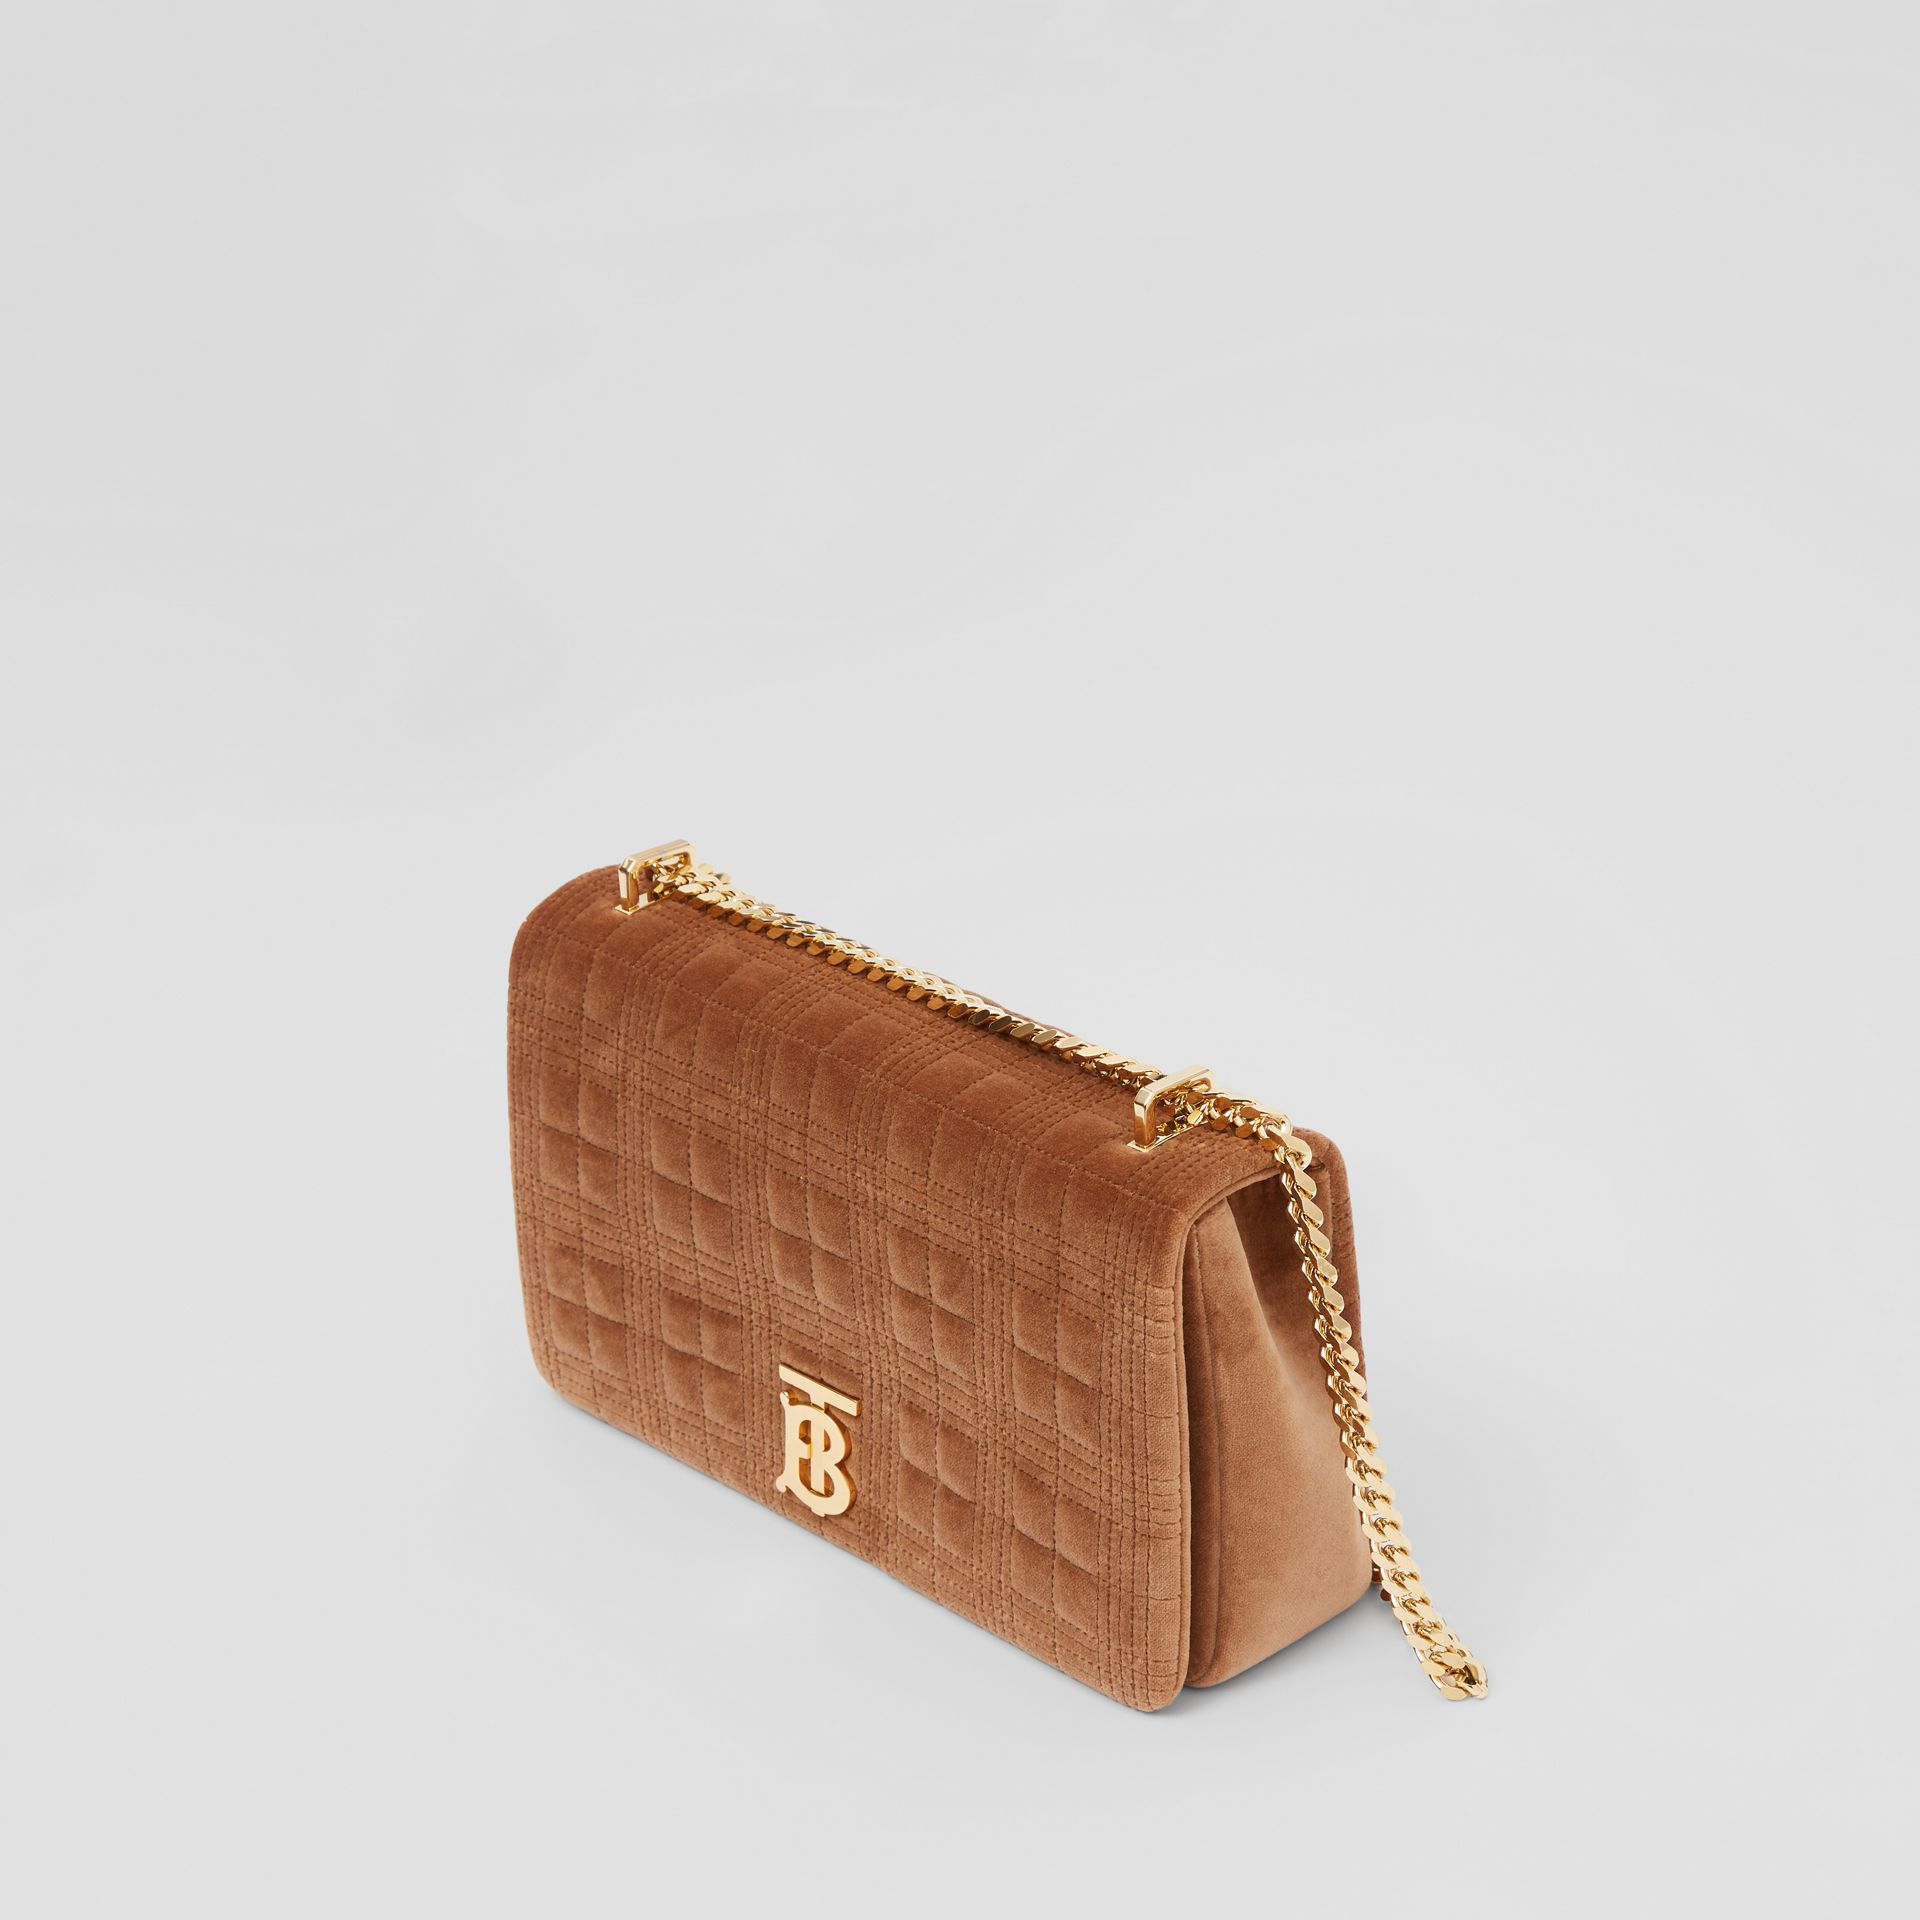 Medium Quilted Velvet Lola Bag in Fawn - Women | Burberry - gallery image 3